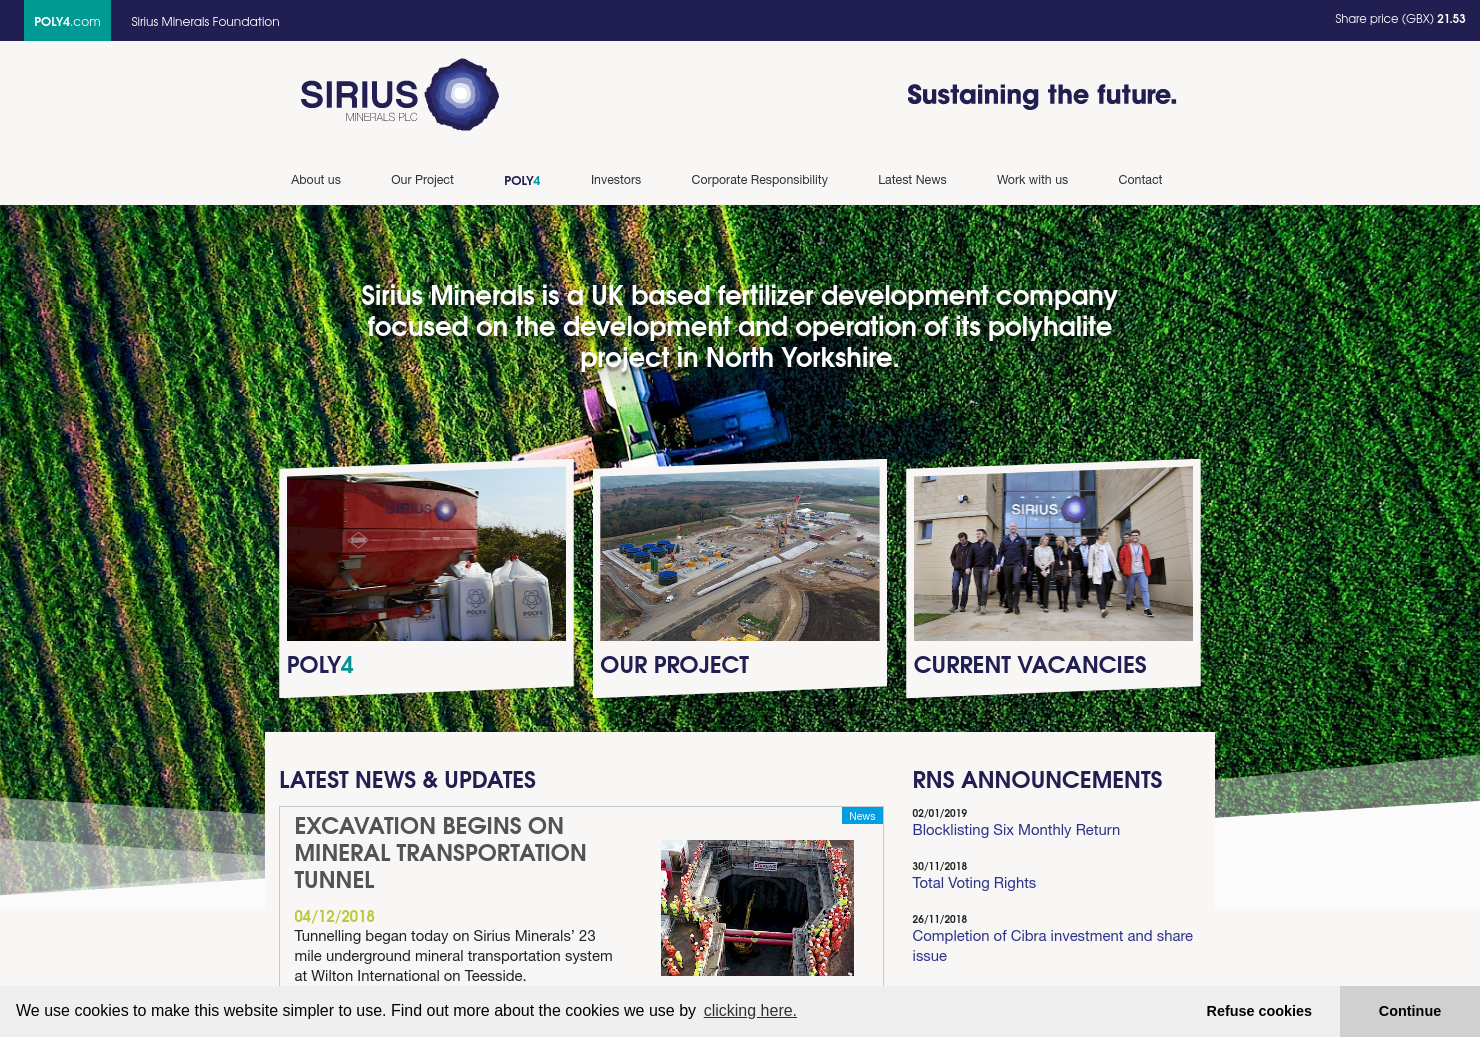 Sirius Minerals Home Page